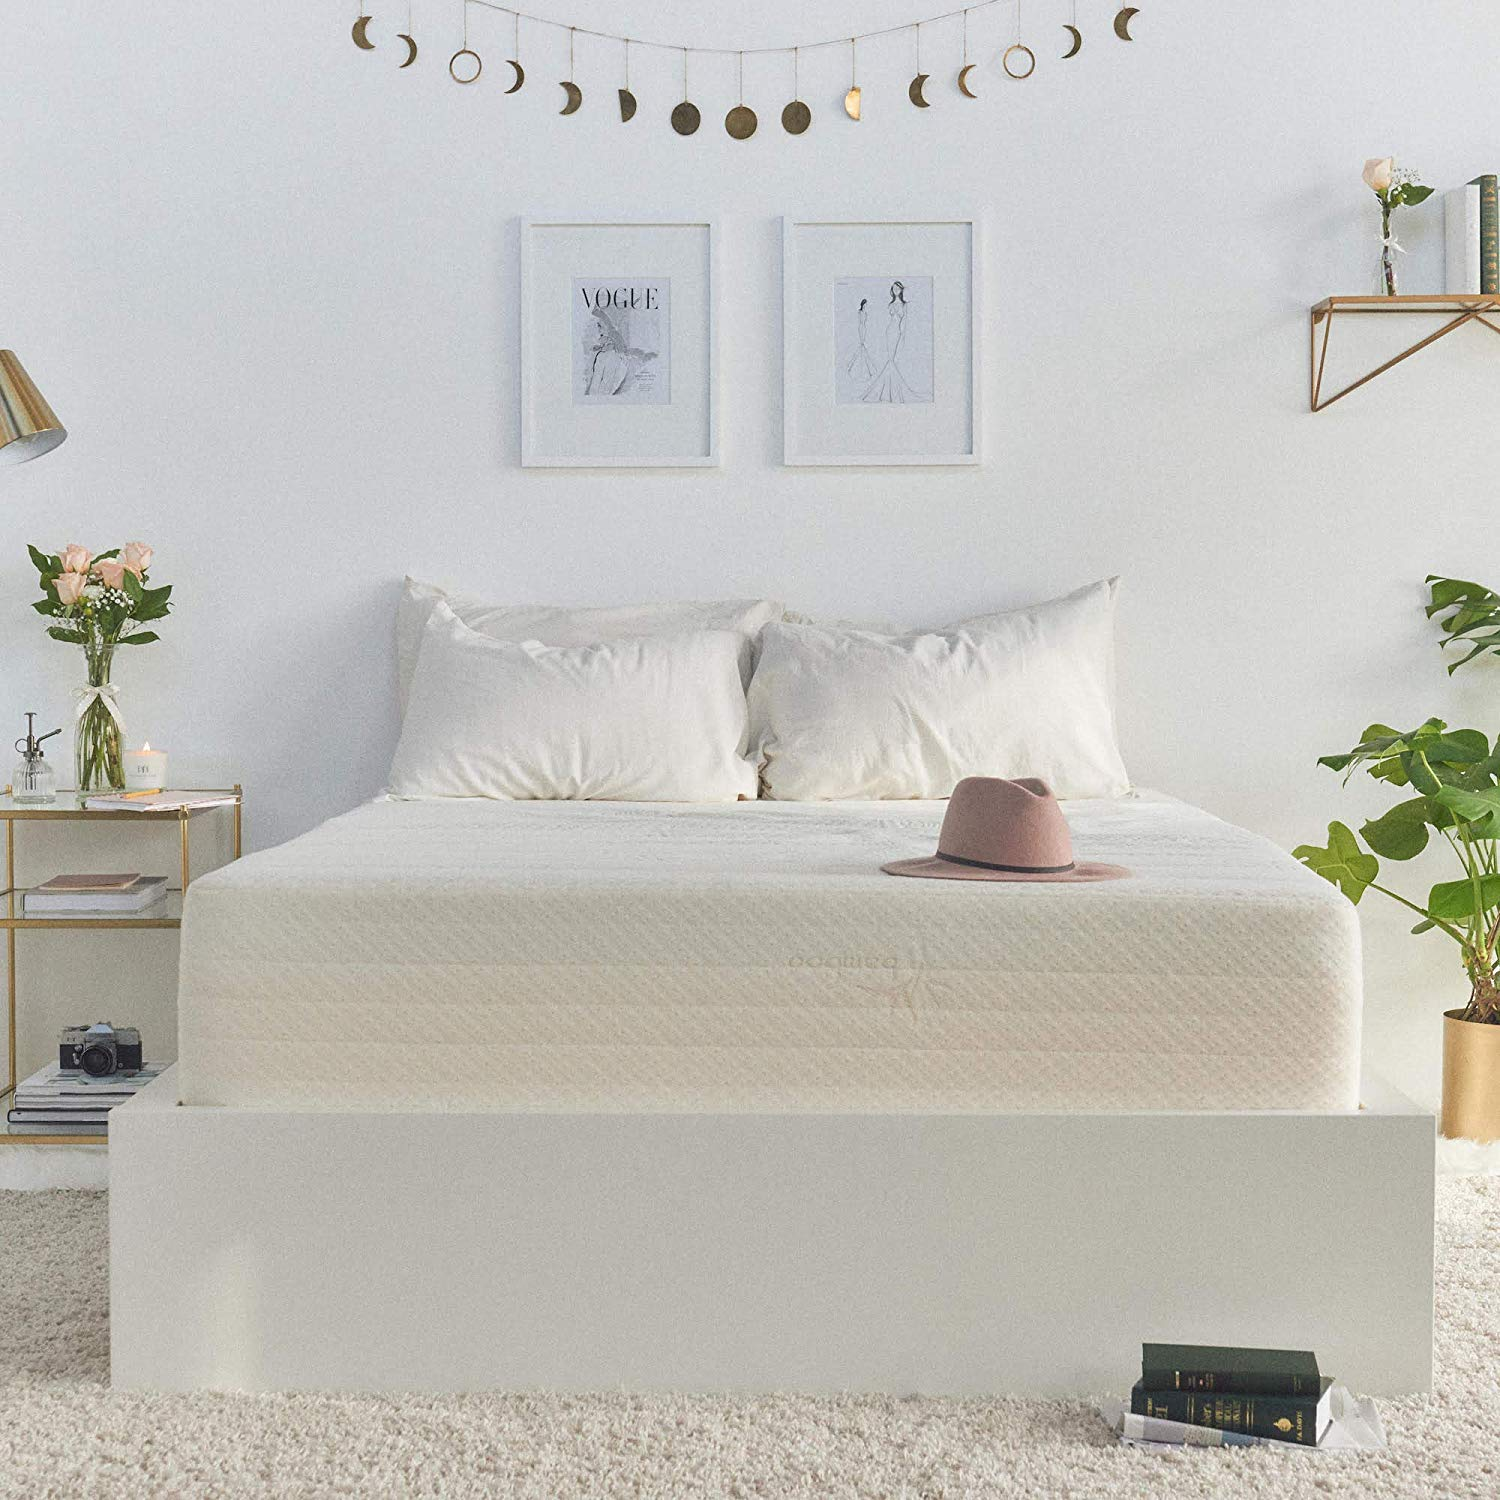 Brentwood Home Cypress Cooling Gel Memory Foam Mattress, Non-Toxic, Made in California, 13-Inch, Queen Size by Brentwood Home